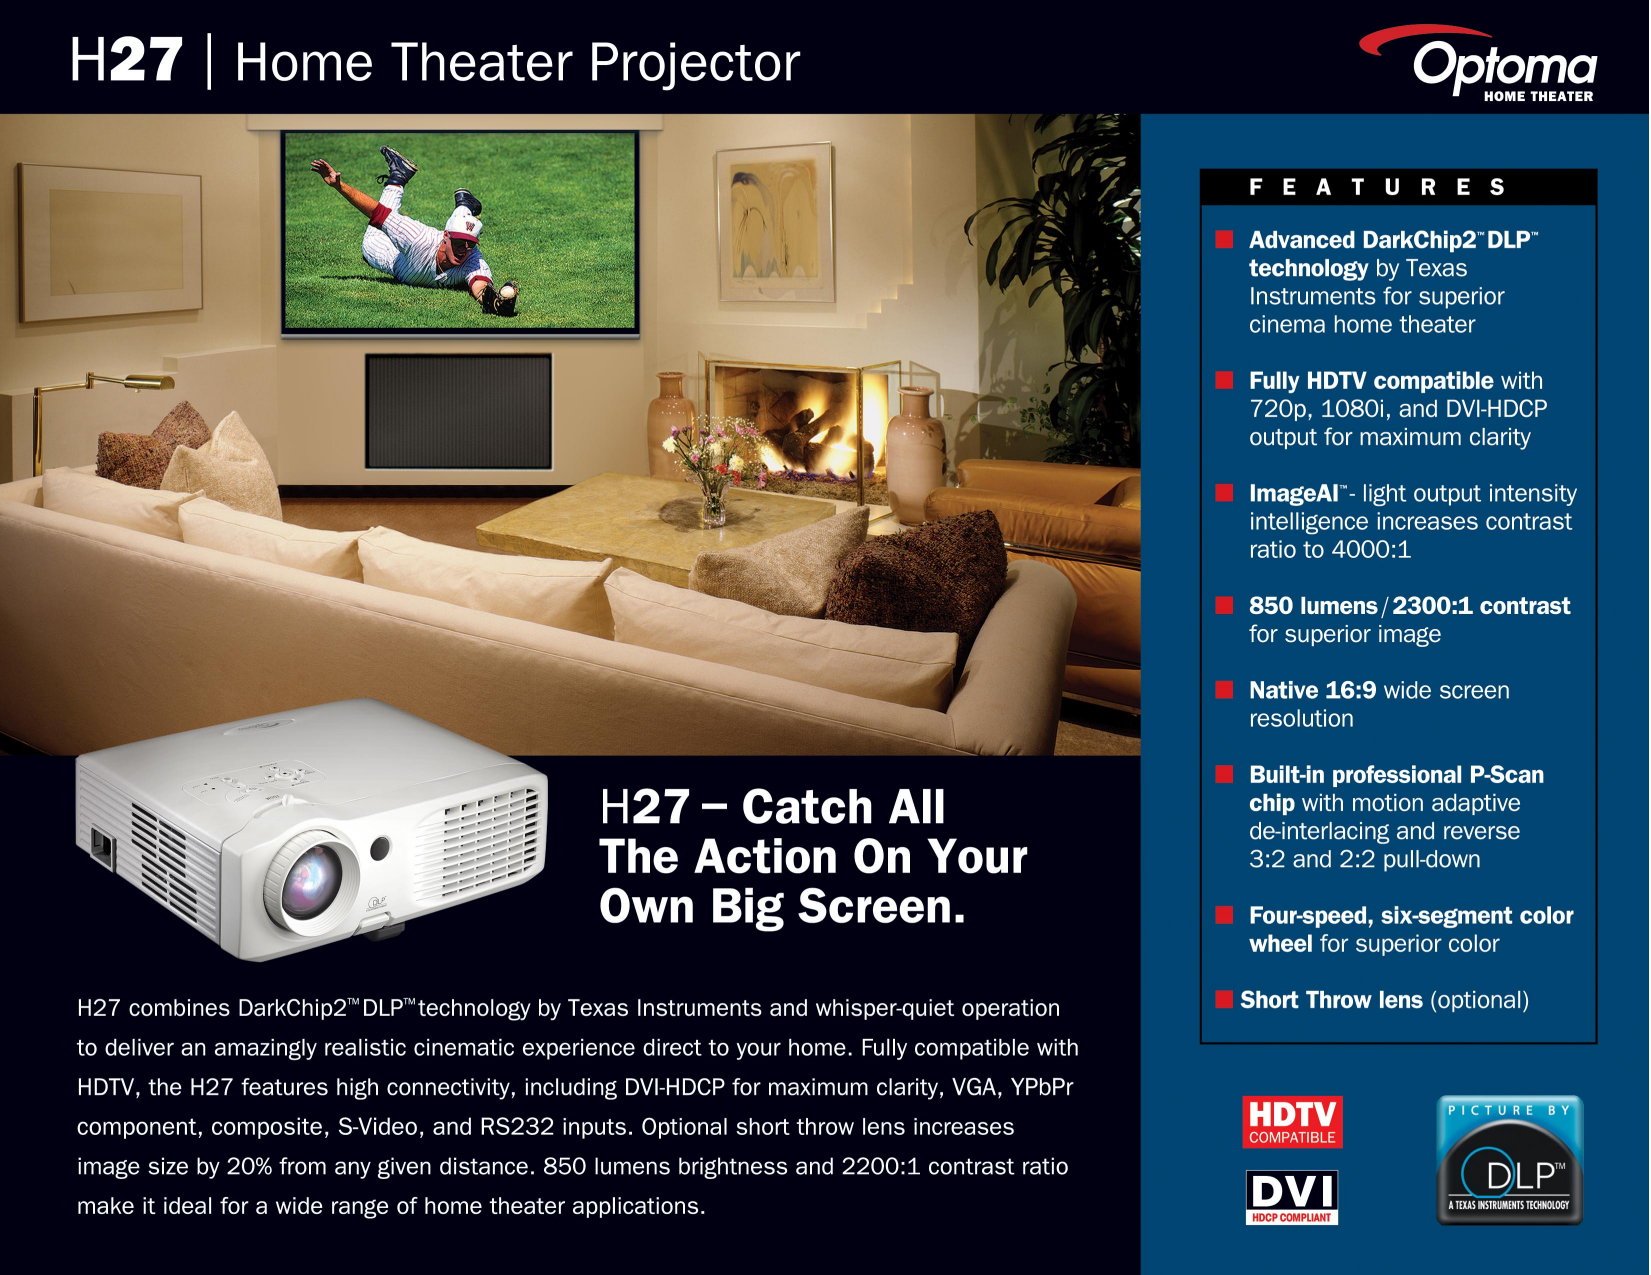 pdf for Optoma Projector H27 manual